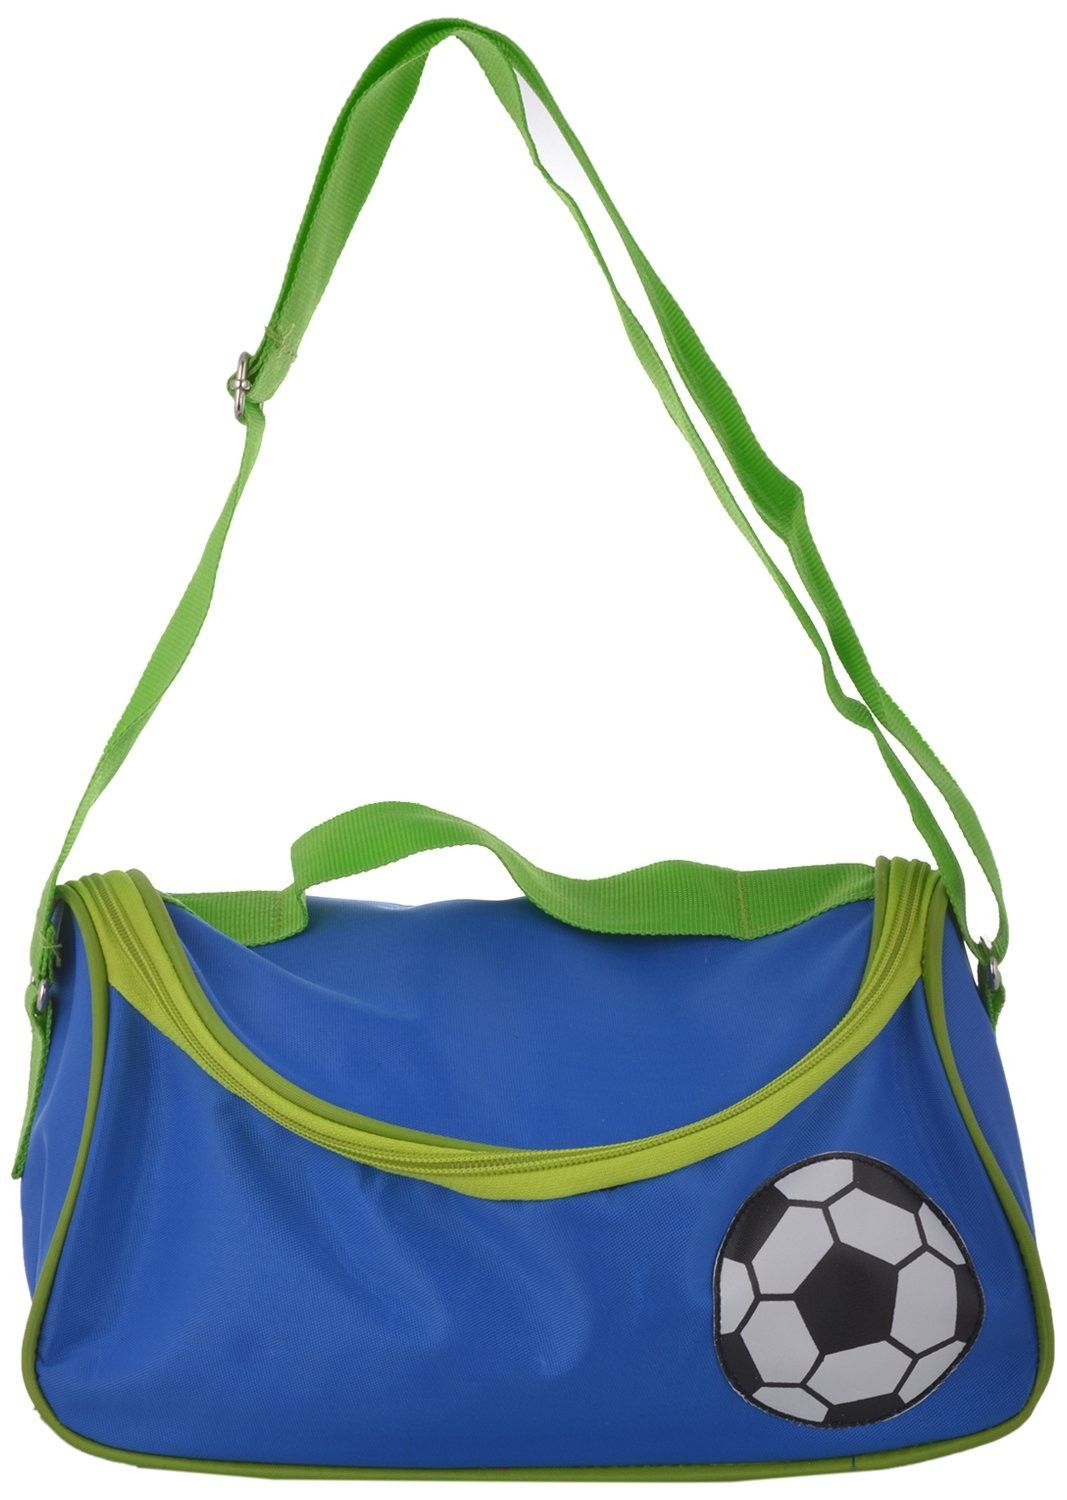 Football Contemporary Toiletry With Sling Bag